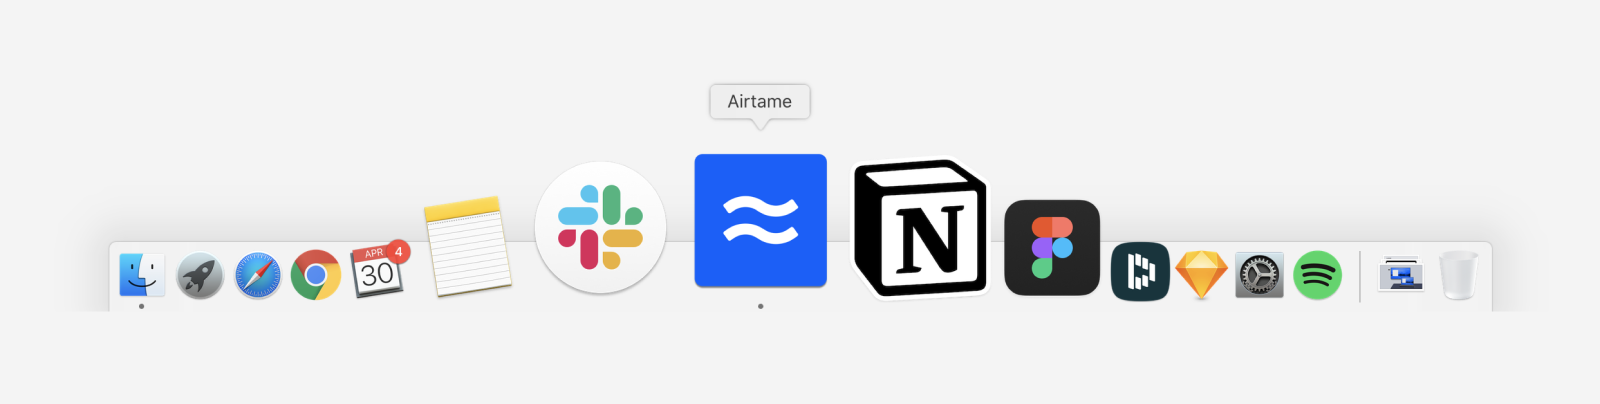 Airtame icon on the macOS dock